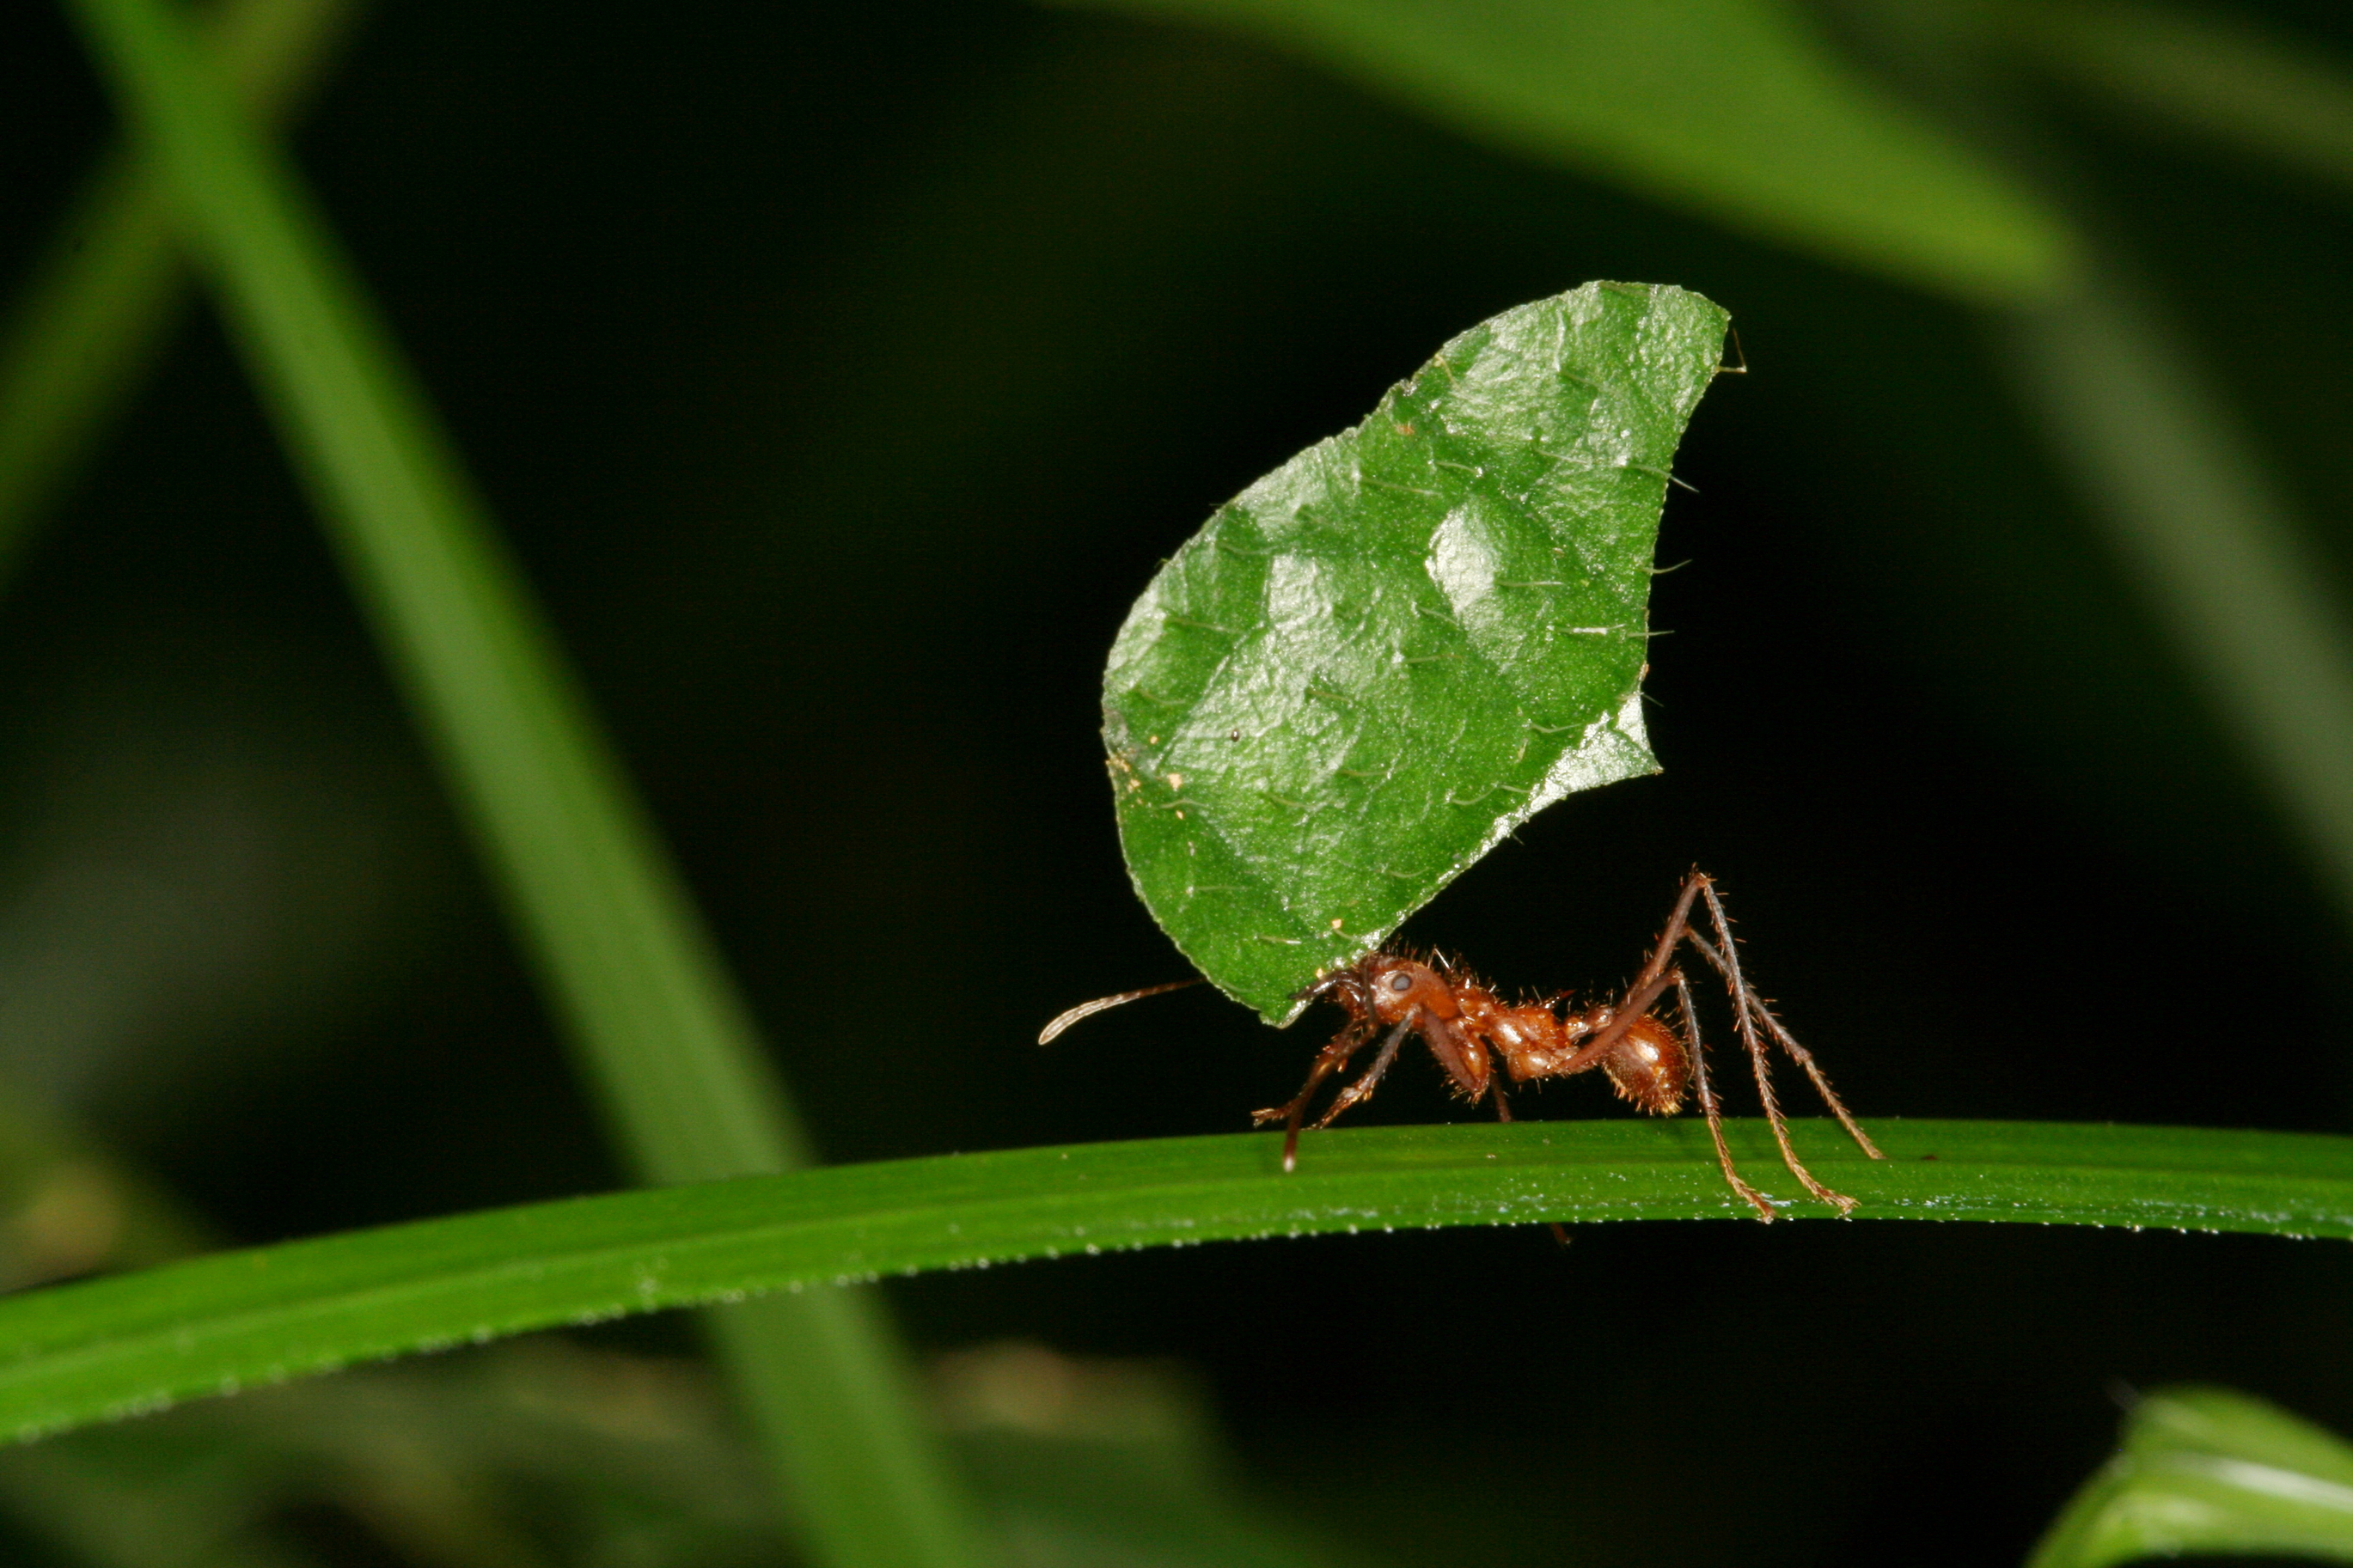 2738x1825 - Ant Wallpapers 20